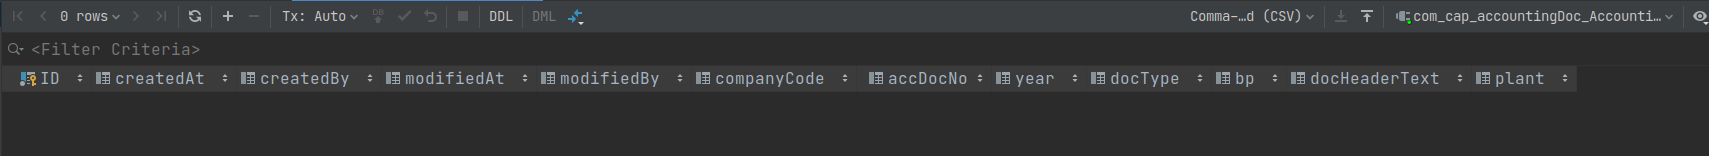 sqlite_accdocheader.png